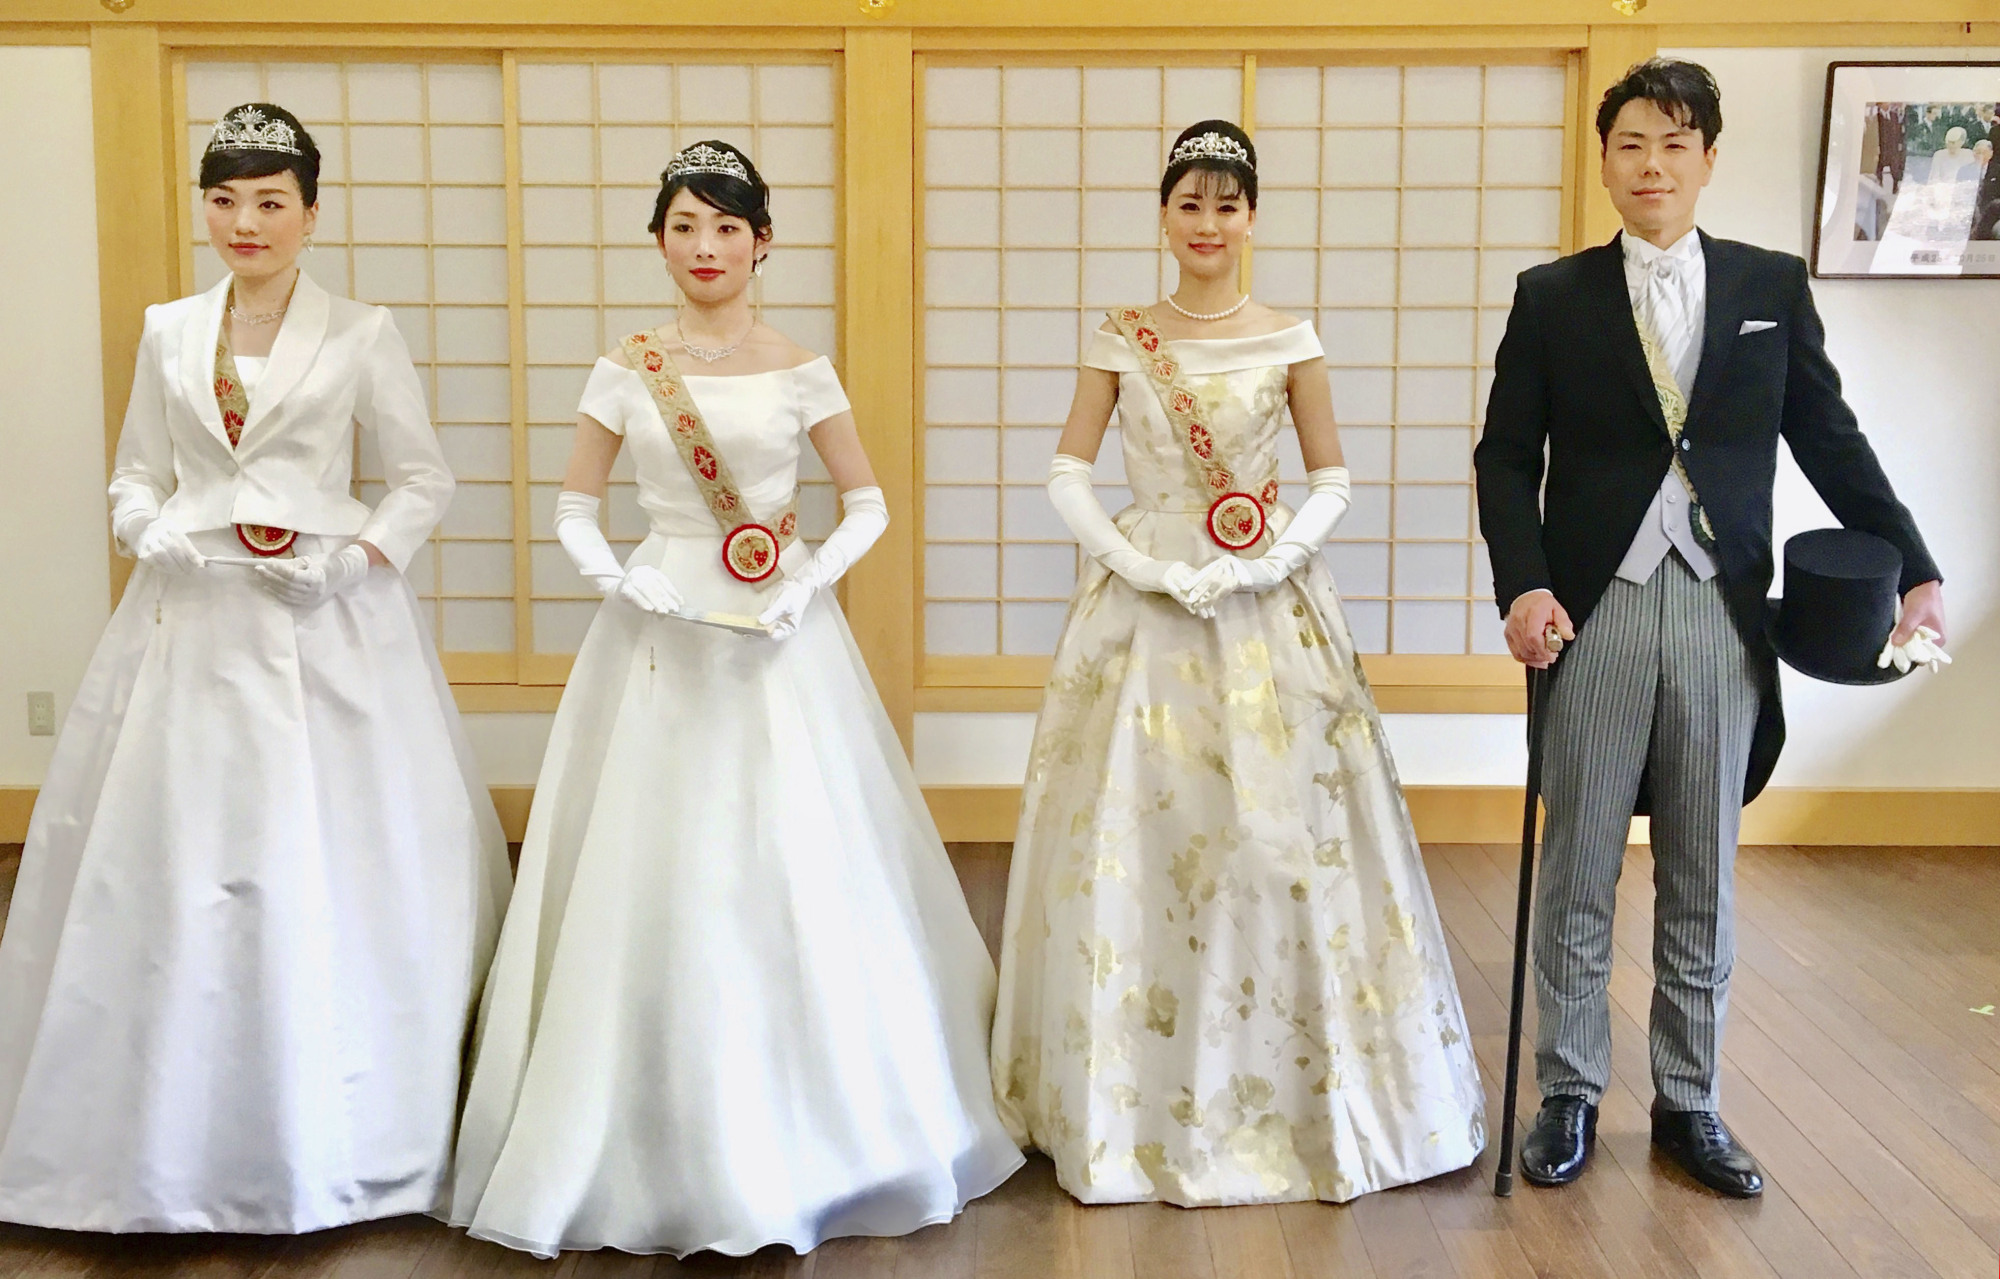 Models show off formal bridal dresses as part of a wedding plan offered by Kamigamo Shrine in Kyoto. Emperor Naruhito's enthronement parade on Sunday is said to have inspired a number of products and services.   KAMIGAMO SHRINE / VIA KYODO